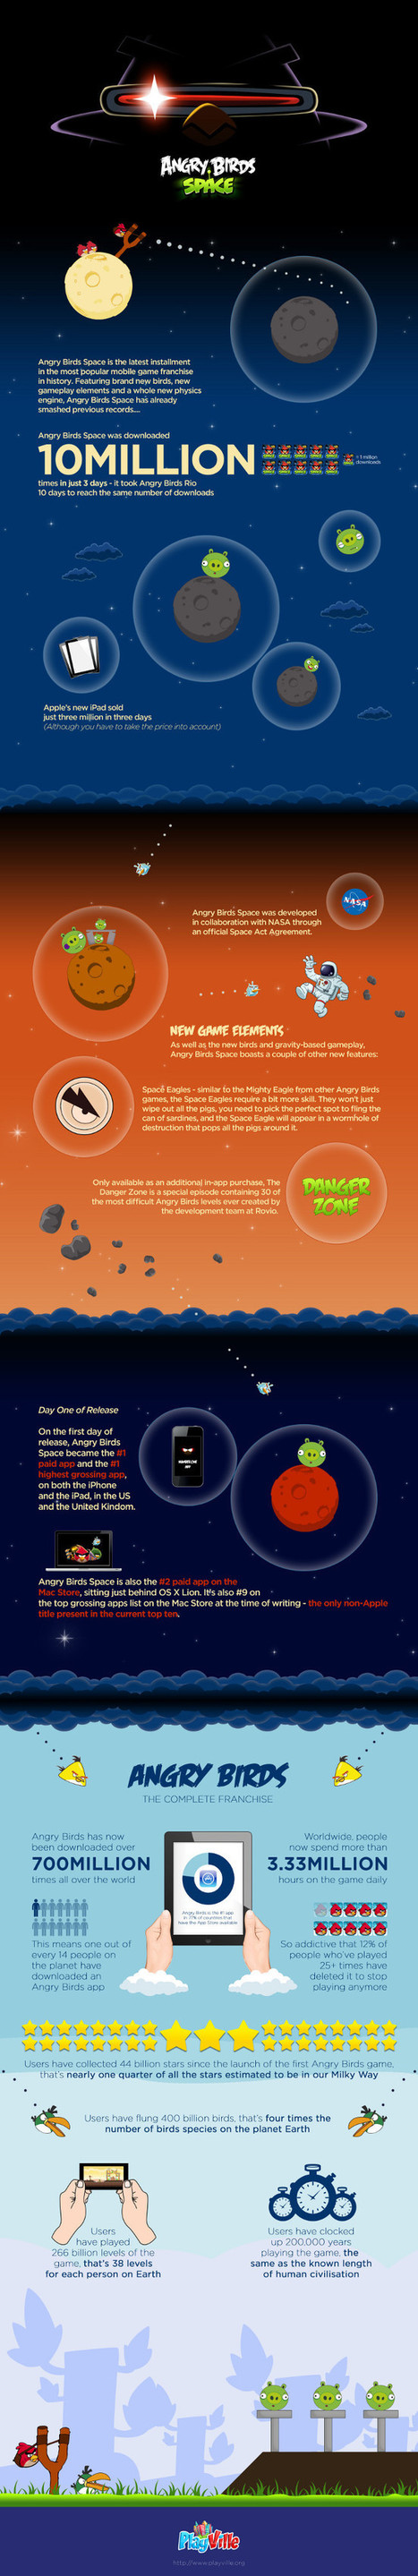 Most Download Game: Angry Birds vs Angry Birds Space | Infographics | All Games | Scoop.it